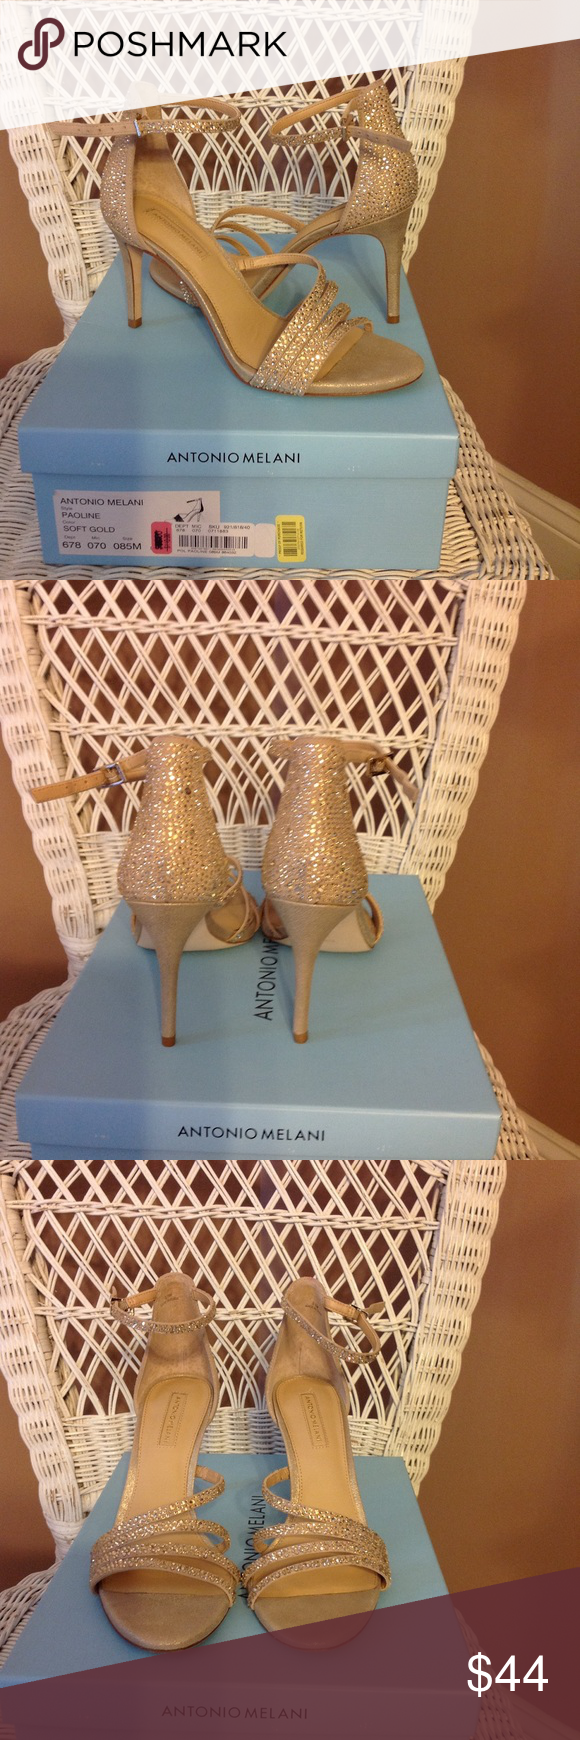 NWOT Antonio Melani soft metallic gold pumps. Antonio Melani shoes in a soft gold with rhinestones.3 3/4 heels added padding built into the shoes, perfect for all functions. Leather uppers & leather soles. Only worn in my home, so listing as NWT   Inventory#0023 ANTONIO MELANI Shoes Heels